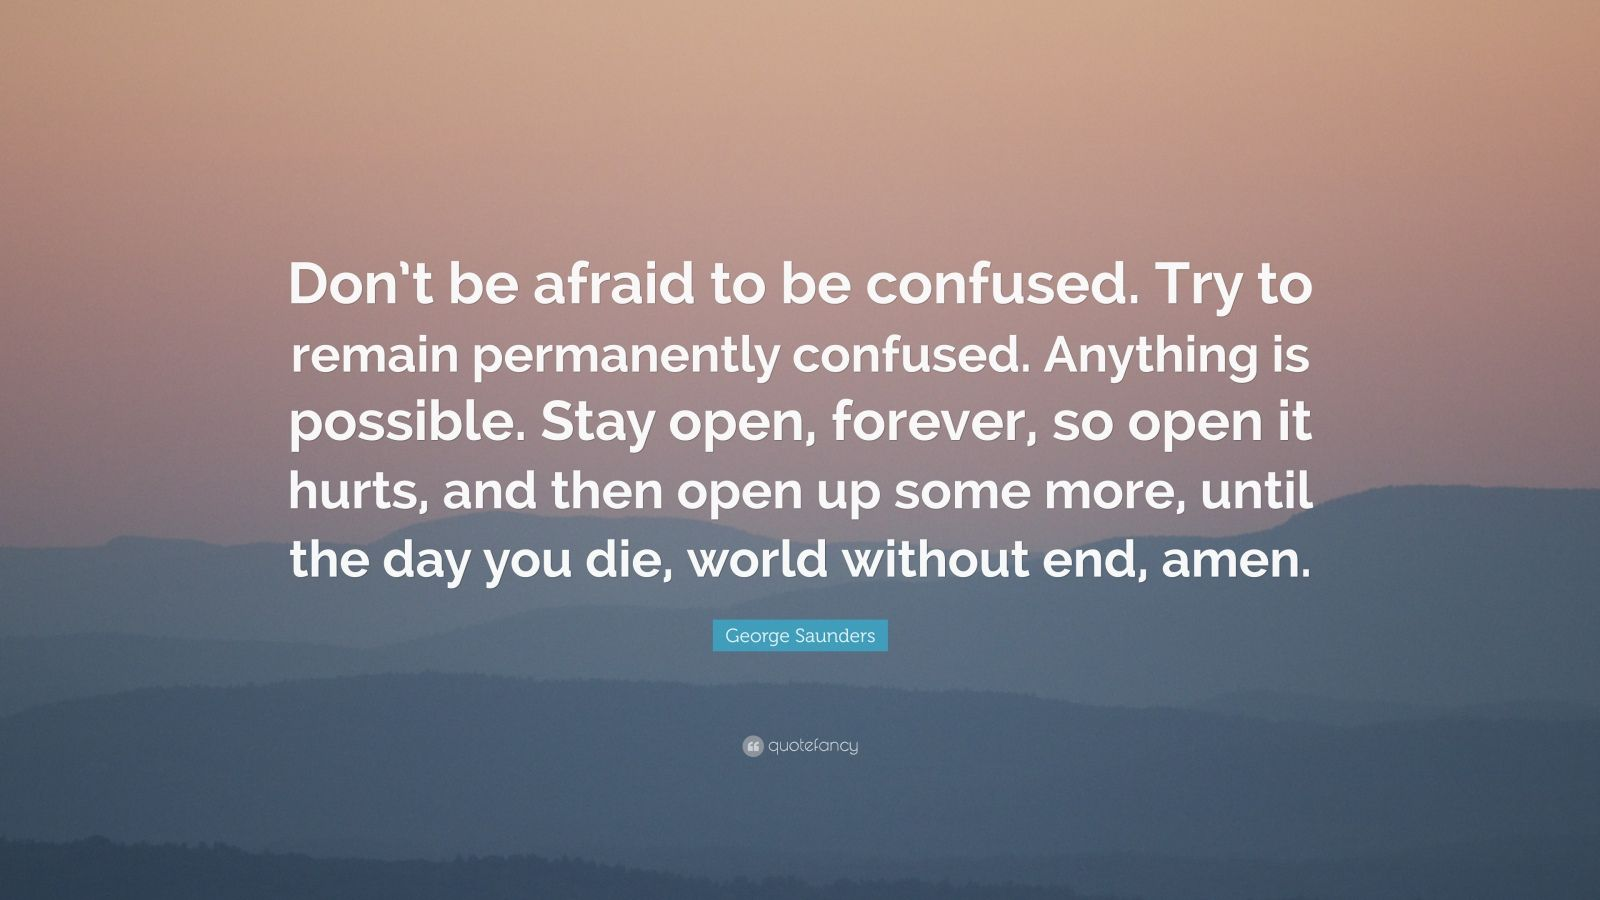 "George Saunders Quote: ""Don't be afraid to be confused. Try to remain permanently confused. Anything is possible. Stay open, forever, so open it hurts, and then open up some more, until the day you die, world without end, amen."""